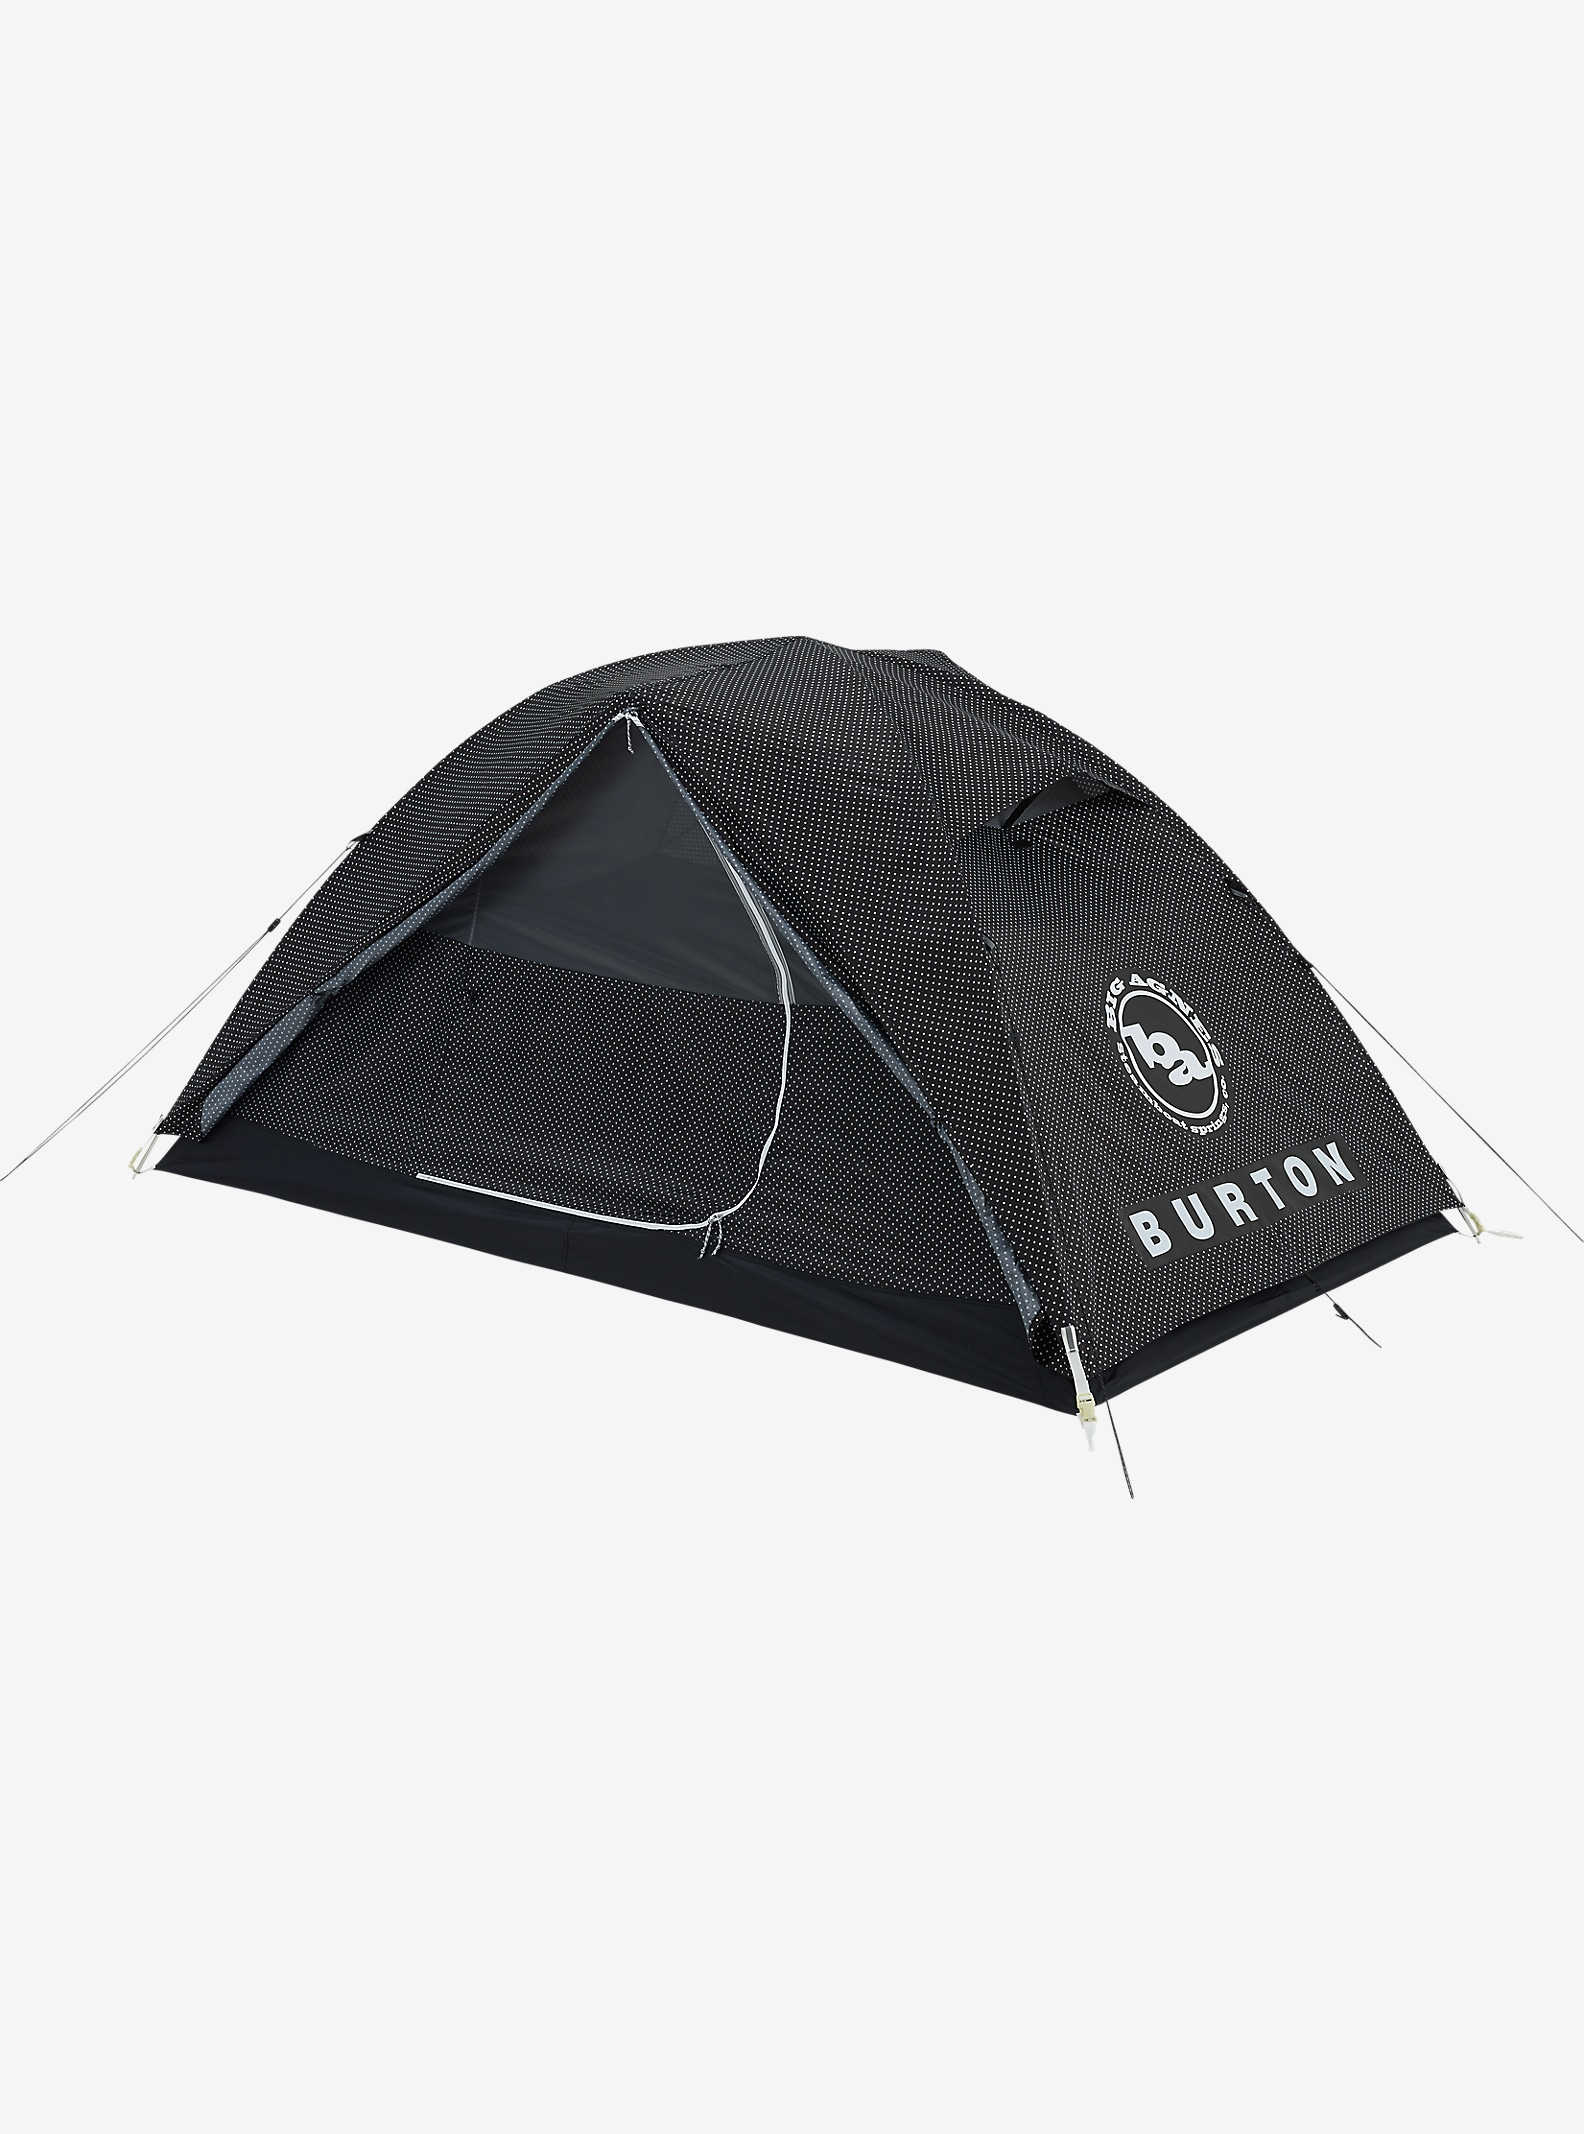 Big Agnes x Burton Nightcap Tent shown in Black Polka Dot